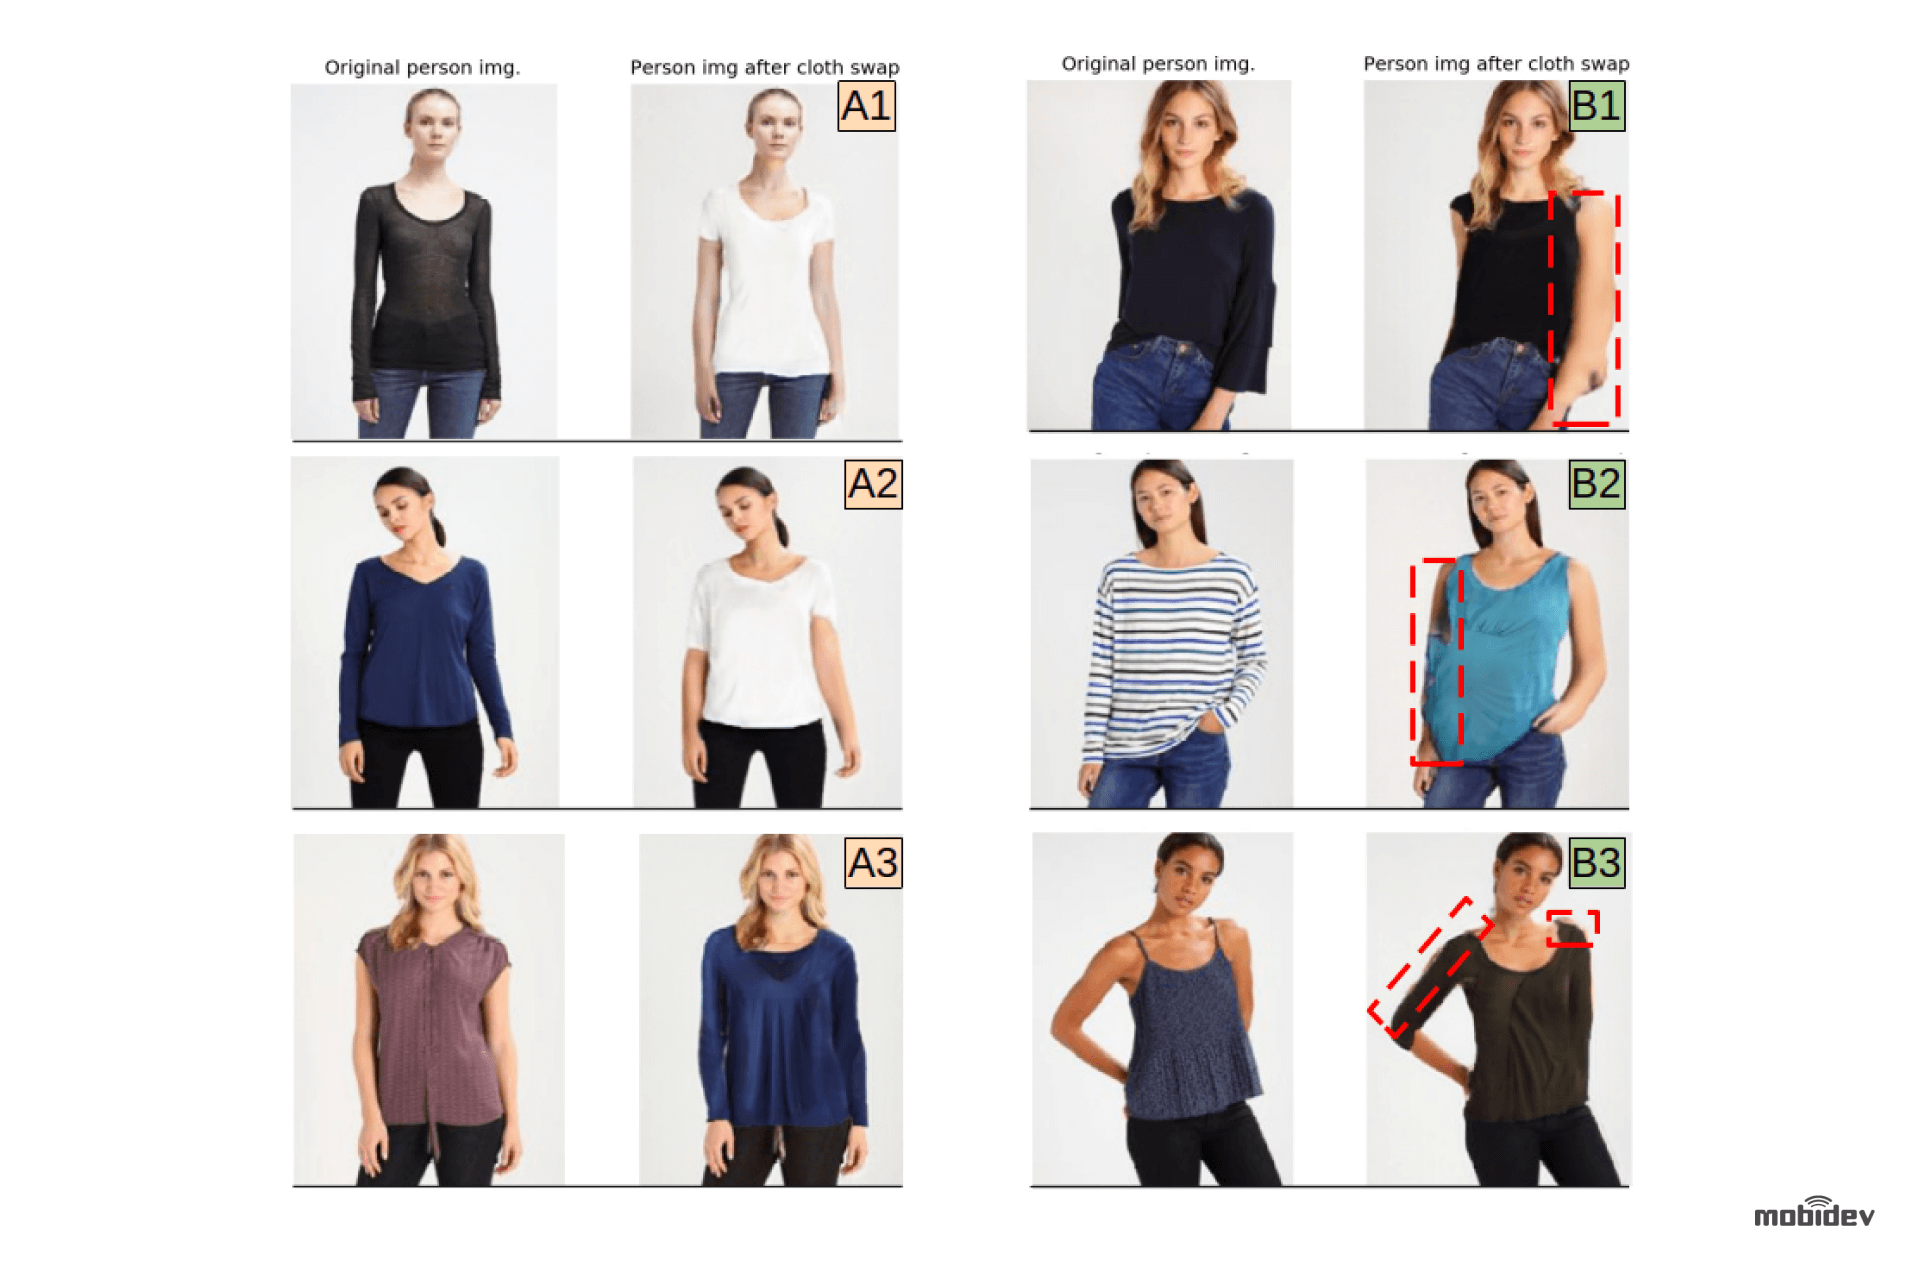 Using deep learning for virtual clothing replacement